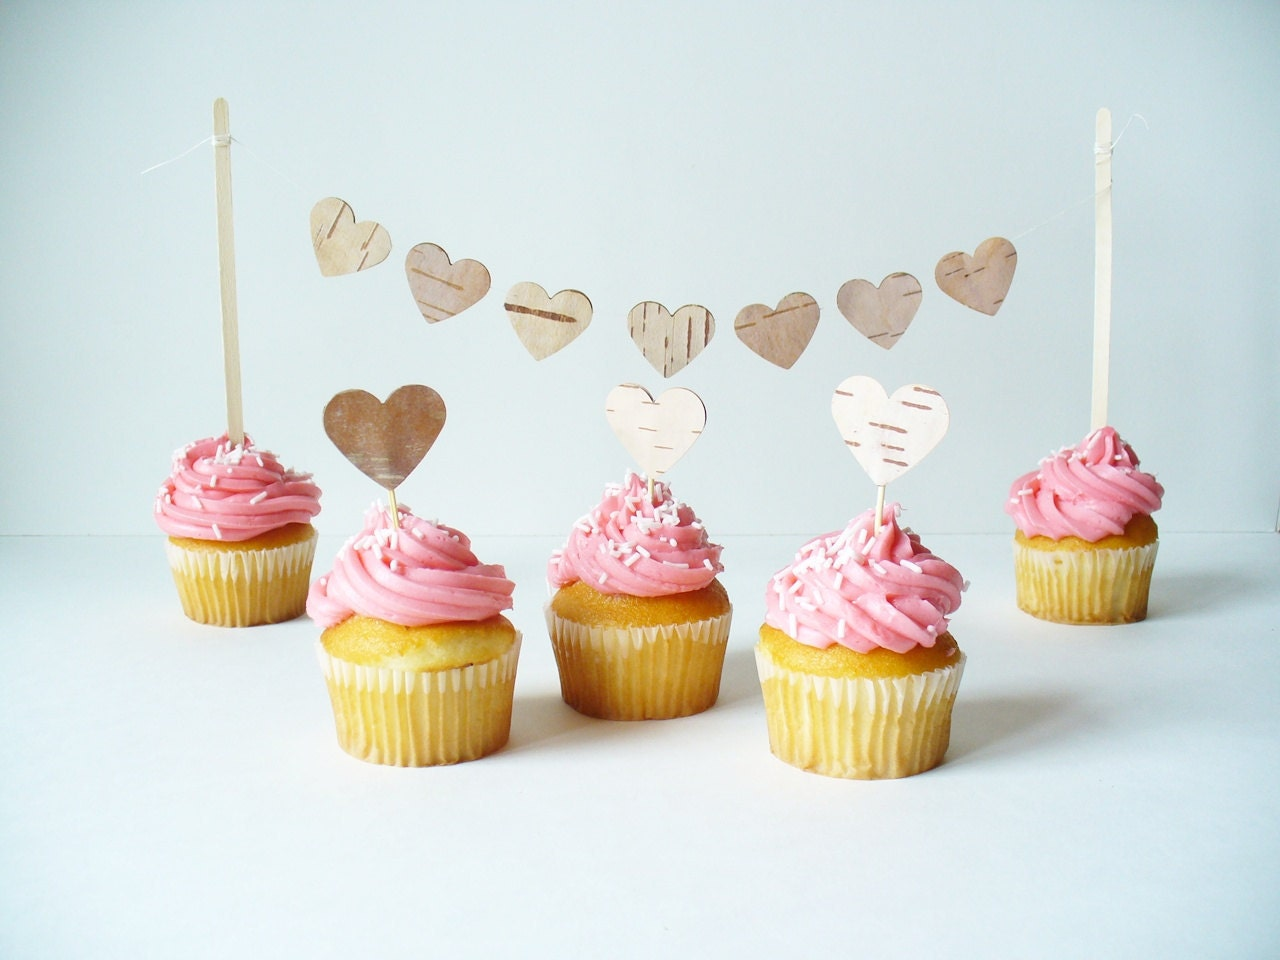 Rustic Cupcake Topper Hearts - Birch Bark,  Rustic, Woodland, Country Wedding, Birthday, Party,  Decoration ,Set of 50 Cupcake Toppers